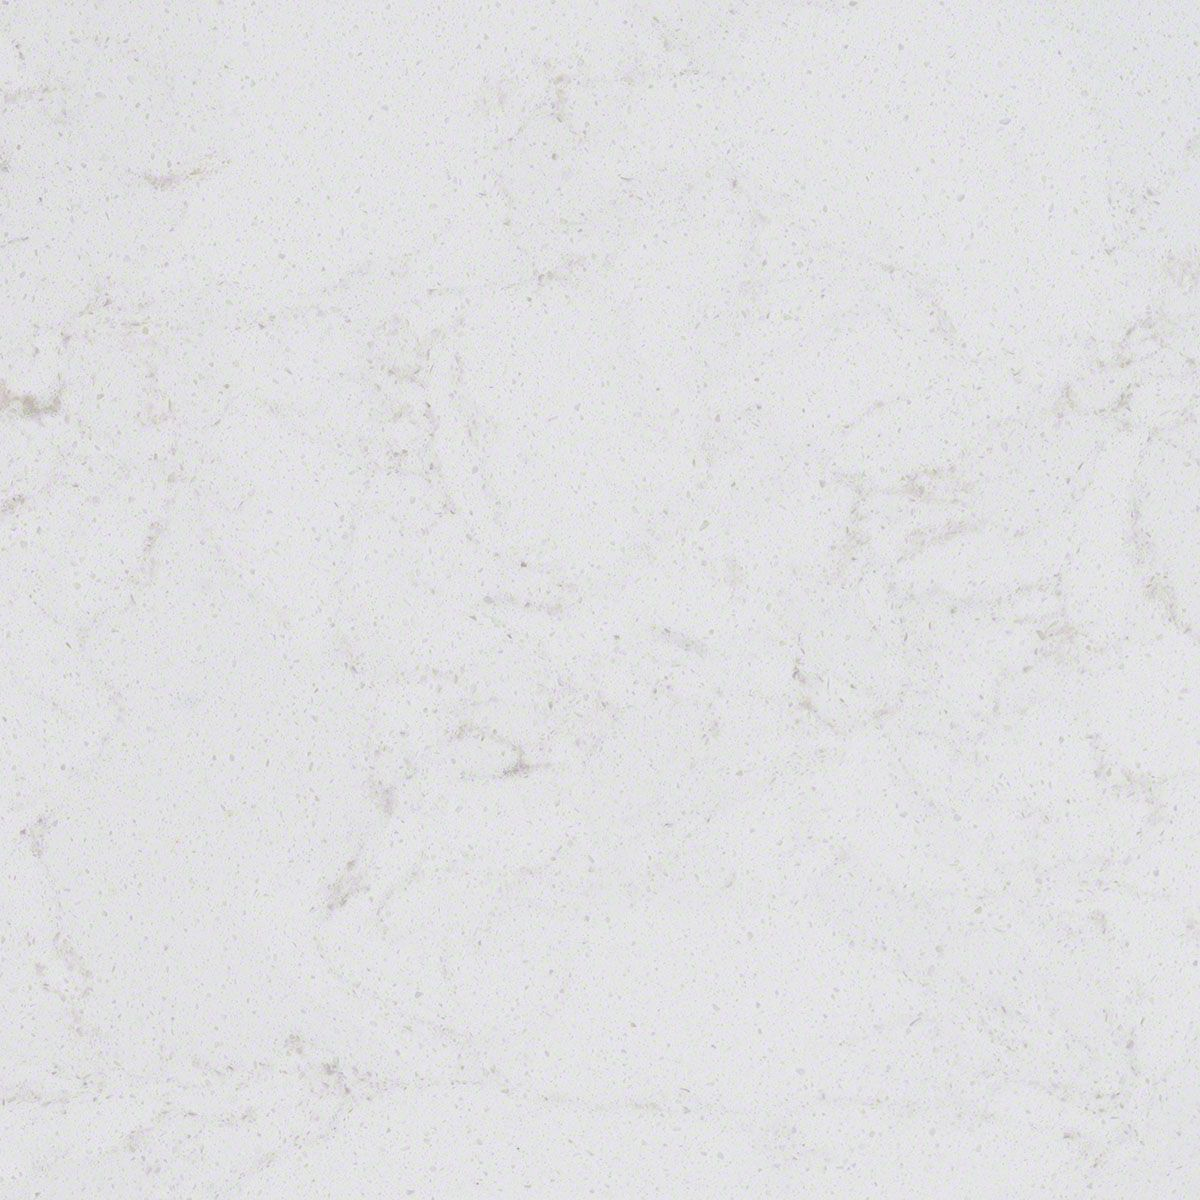 Marbella White Quartz Slab Kitchen Pinterest Quartz